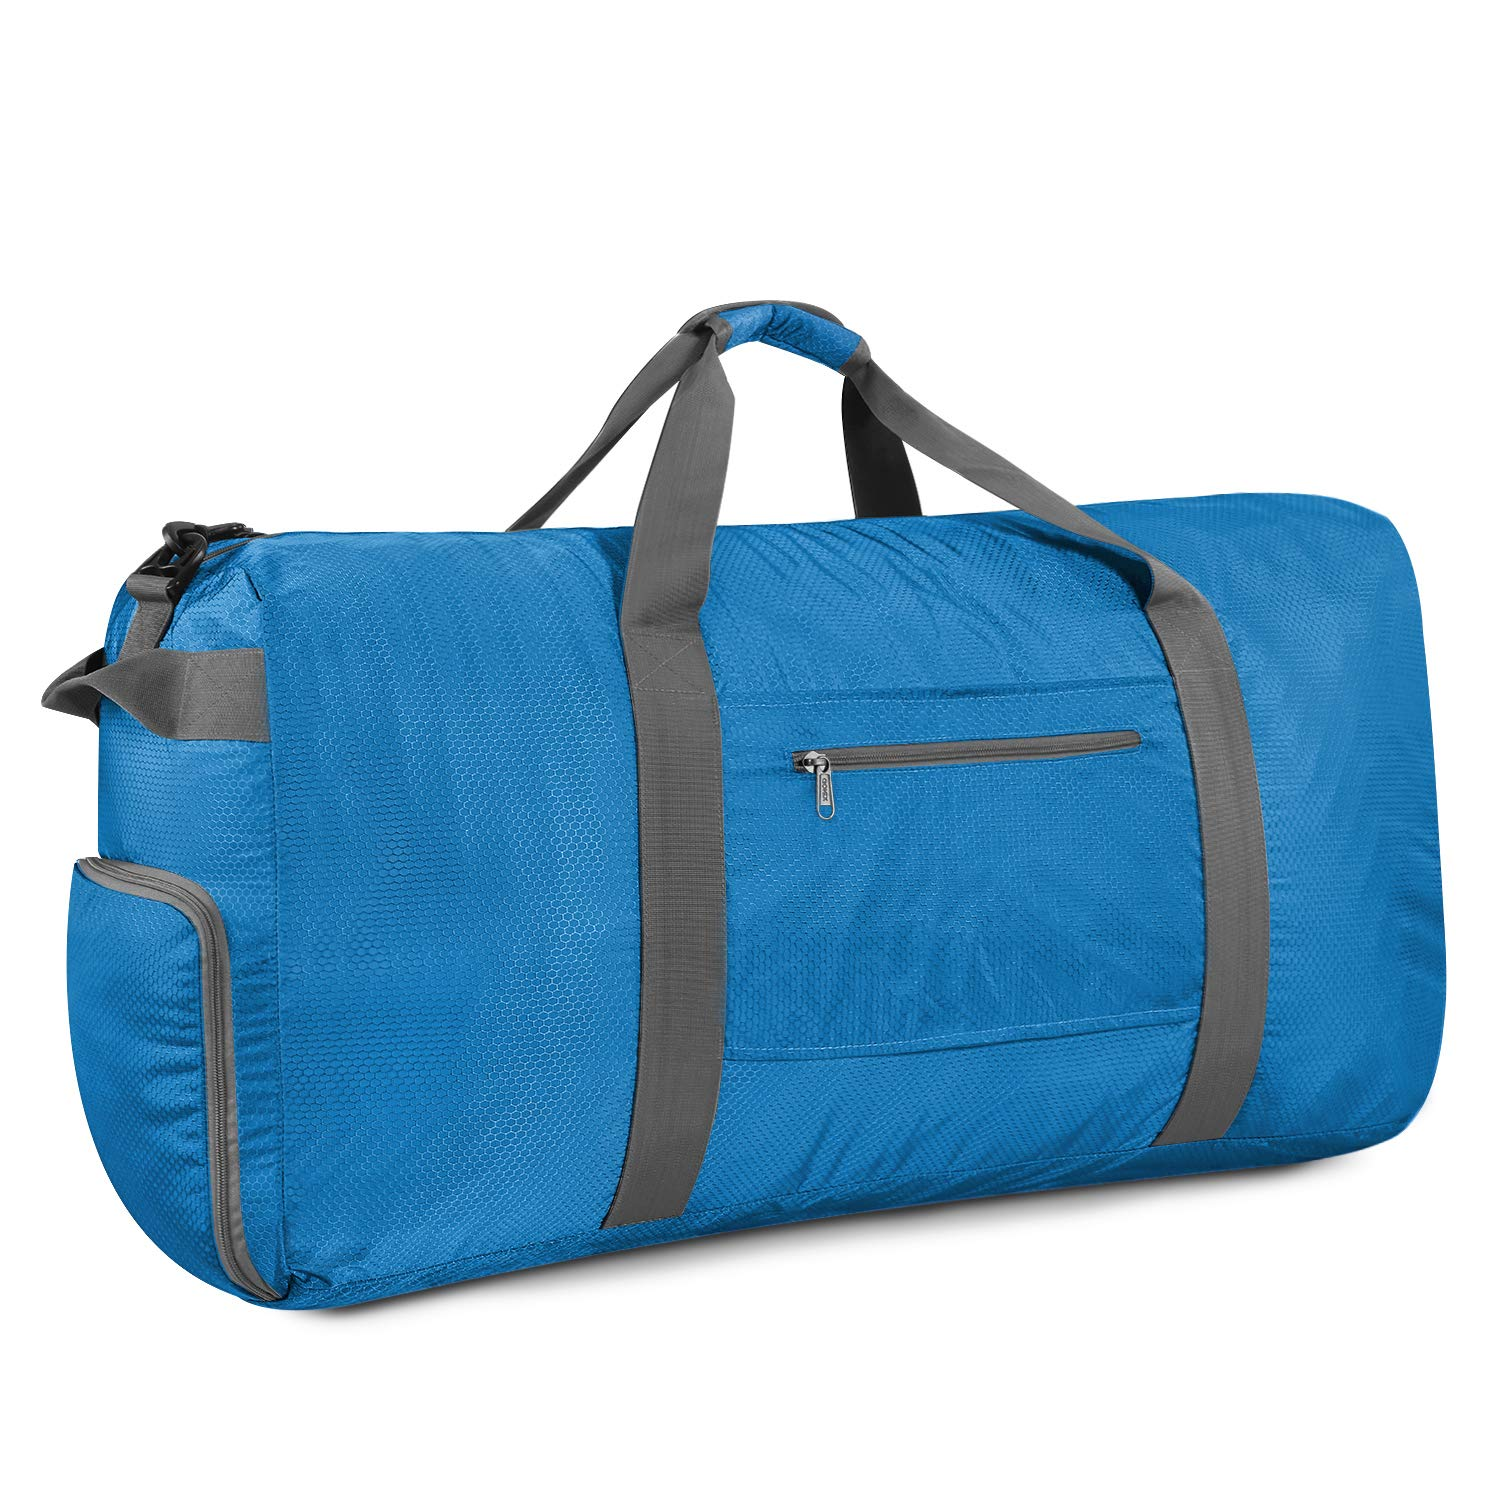 Gonex 100L Packable Travel Duffle Bag, Extra Large Luggage Duffel 9 Color  Choices b607f28a4d